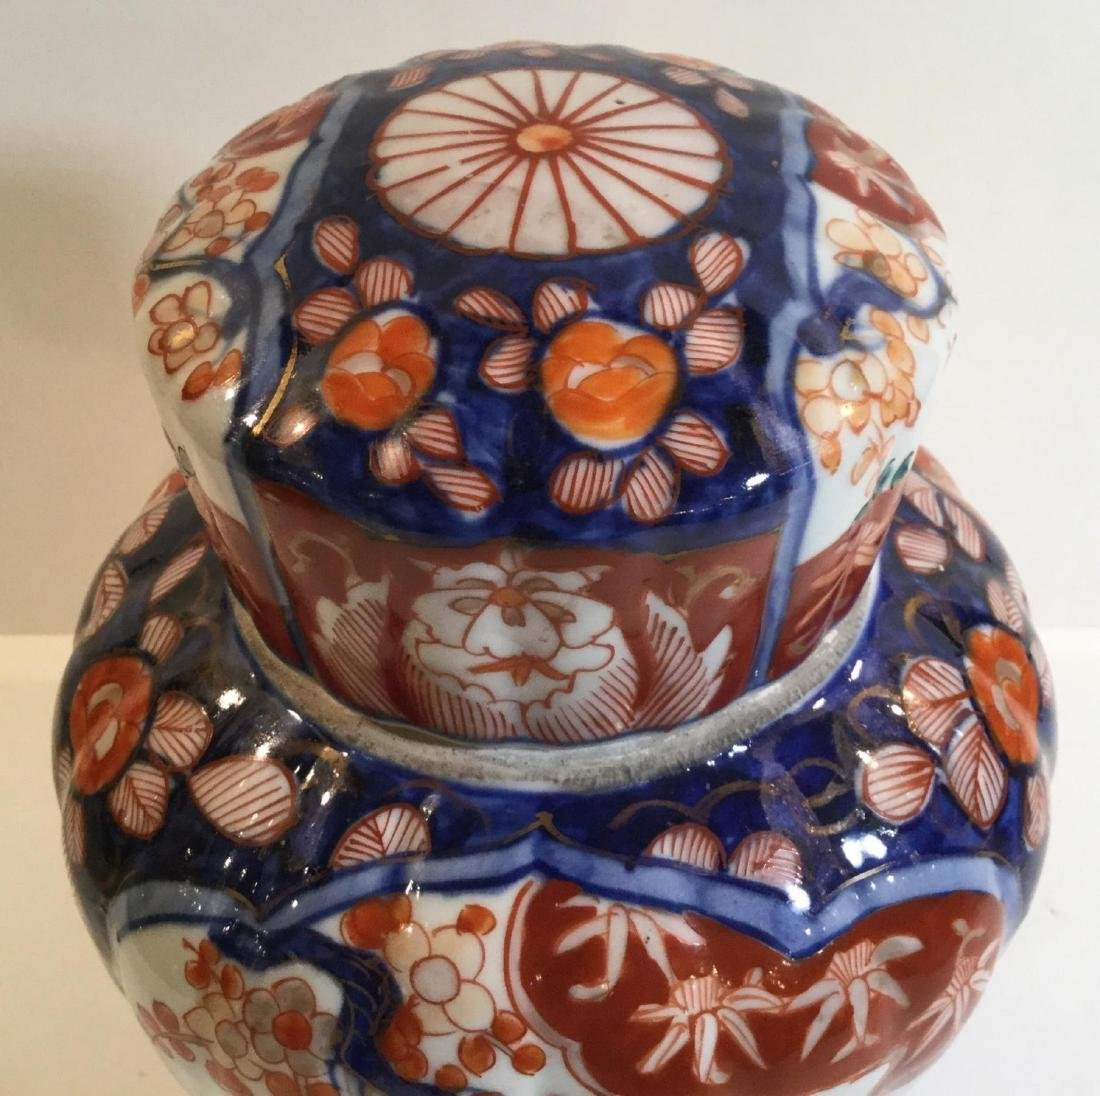 Japanese Imari Porcelain Lobed Body Ginger Jar - 2